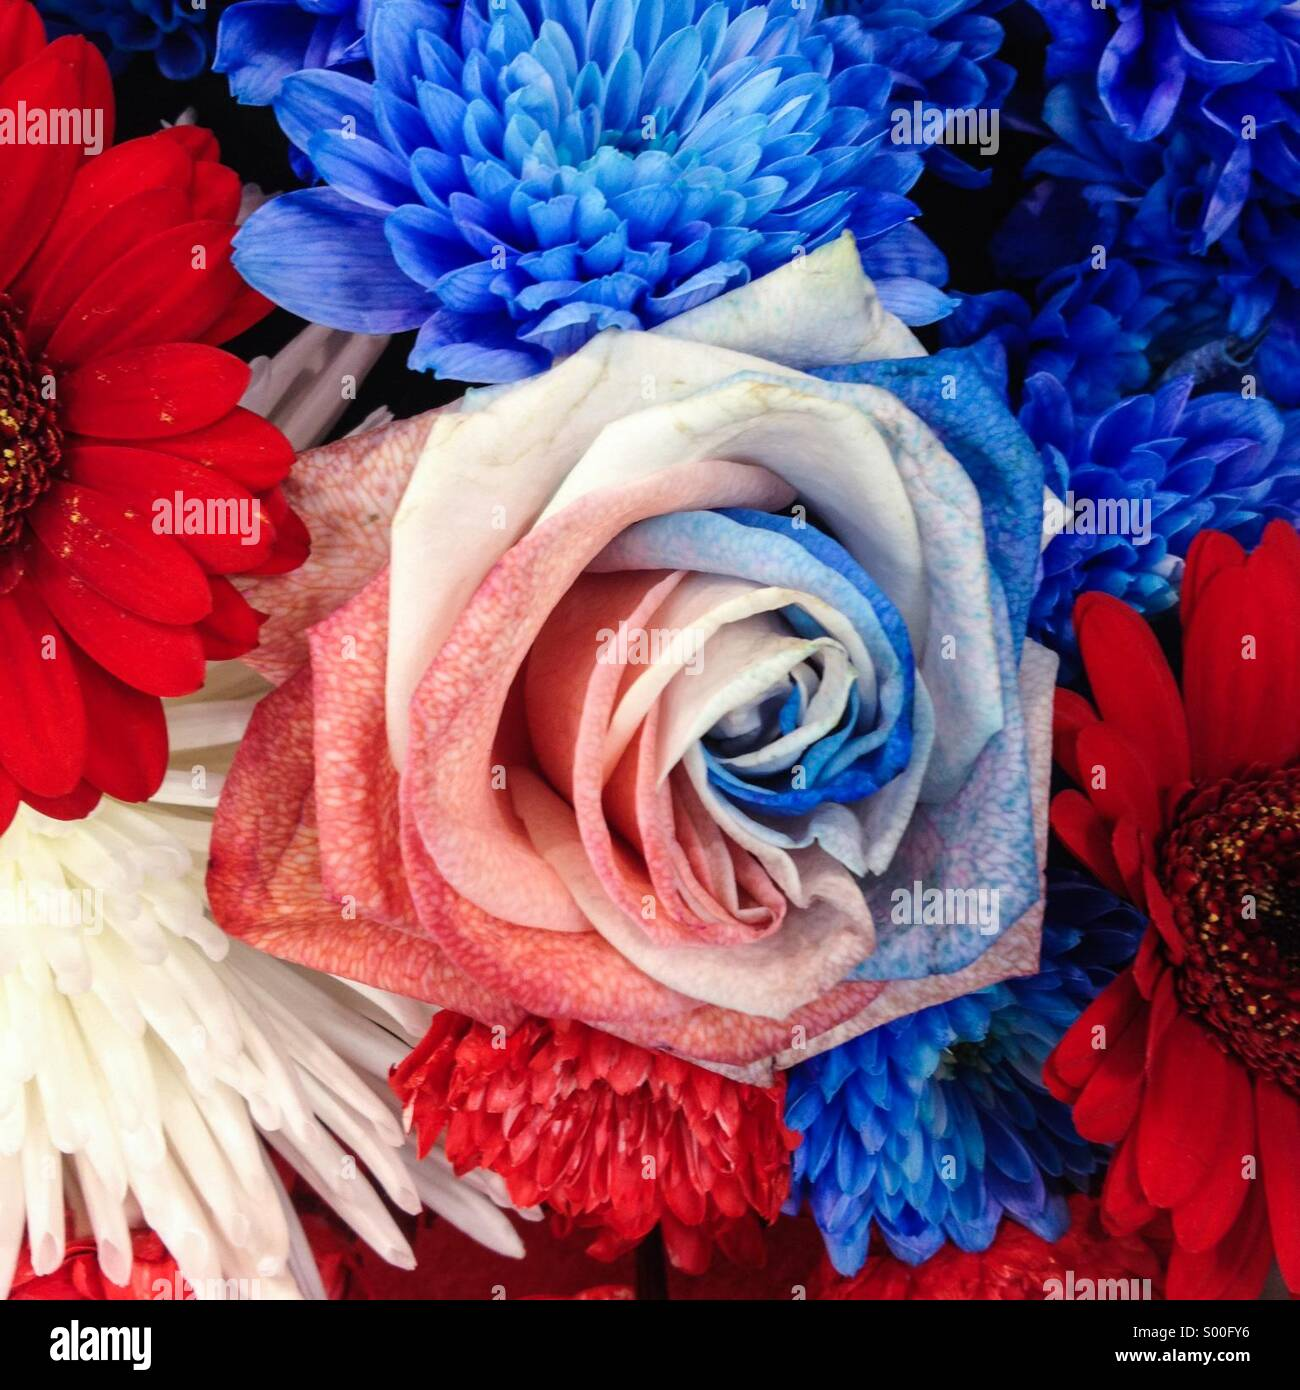 Red white and blue rose flower stock photo royalty free image red white and blue rose flower dhlflorist Gallery